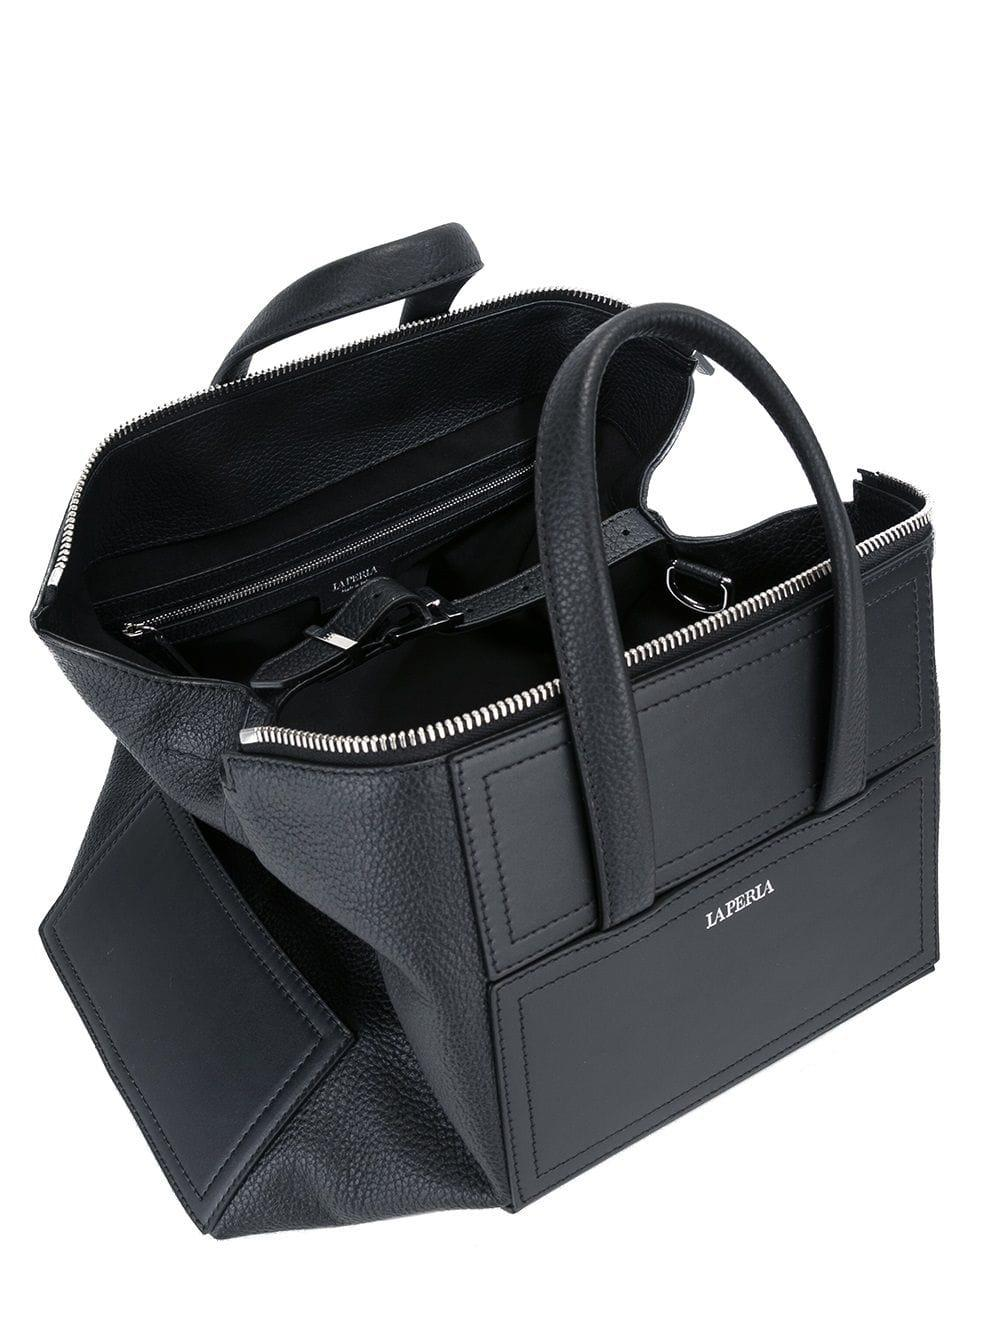 La Perla Leather 'daily' Tote in Black